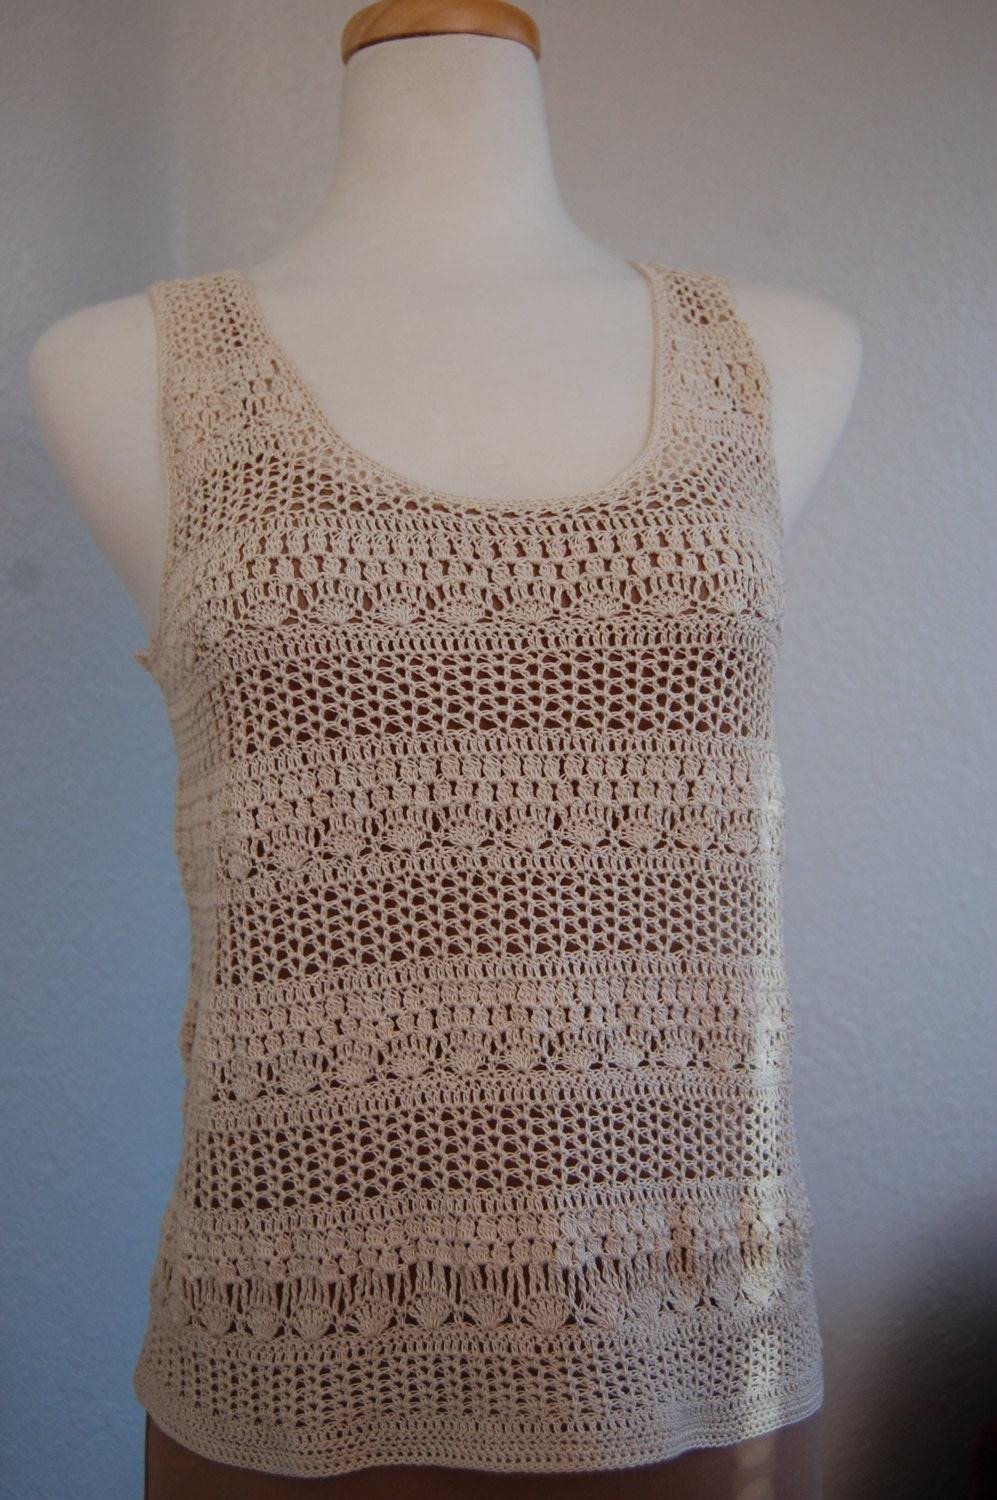 Crochet top PATTERN, detailed instructions in English for ... |Thread Crochet Top